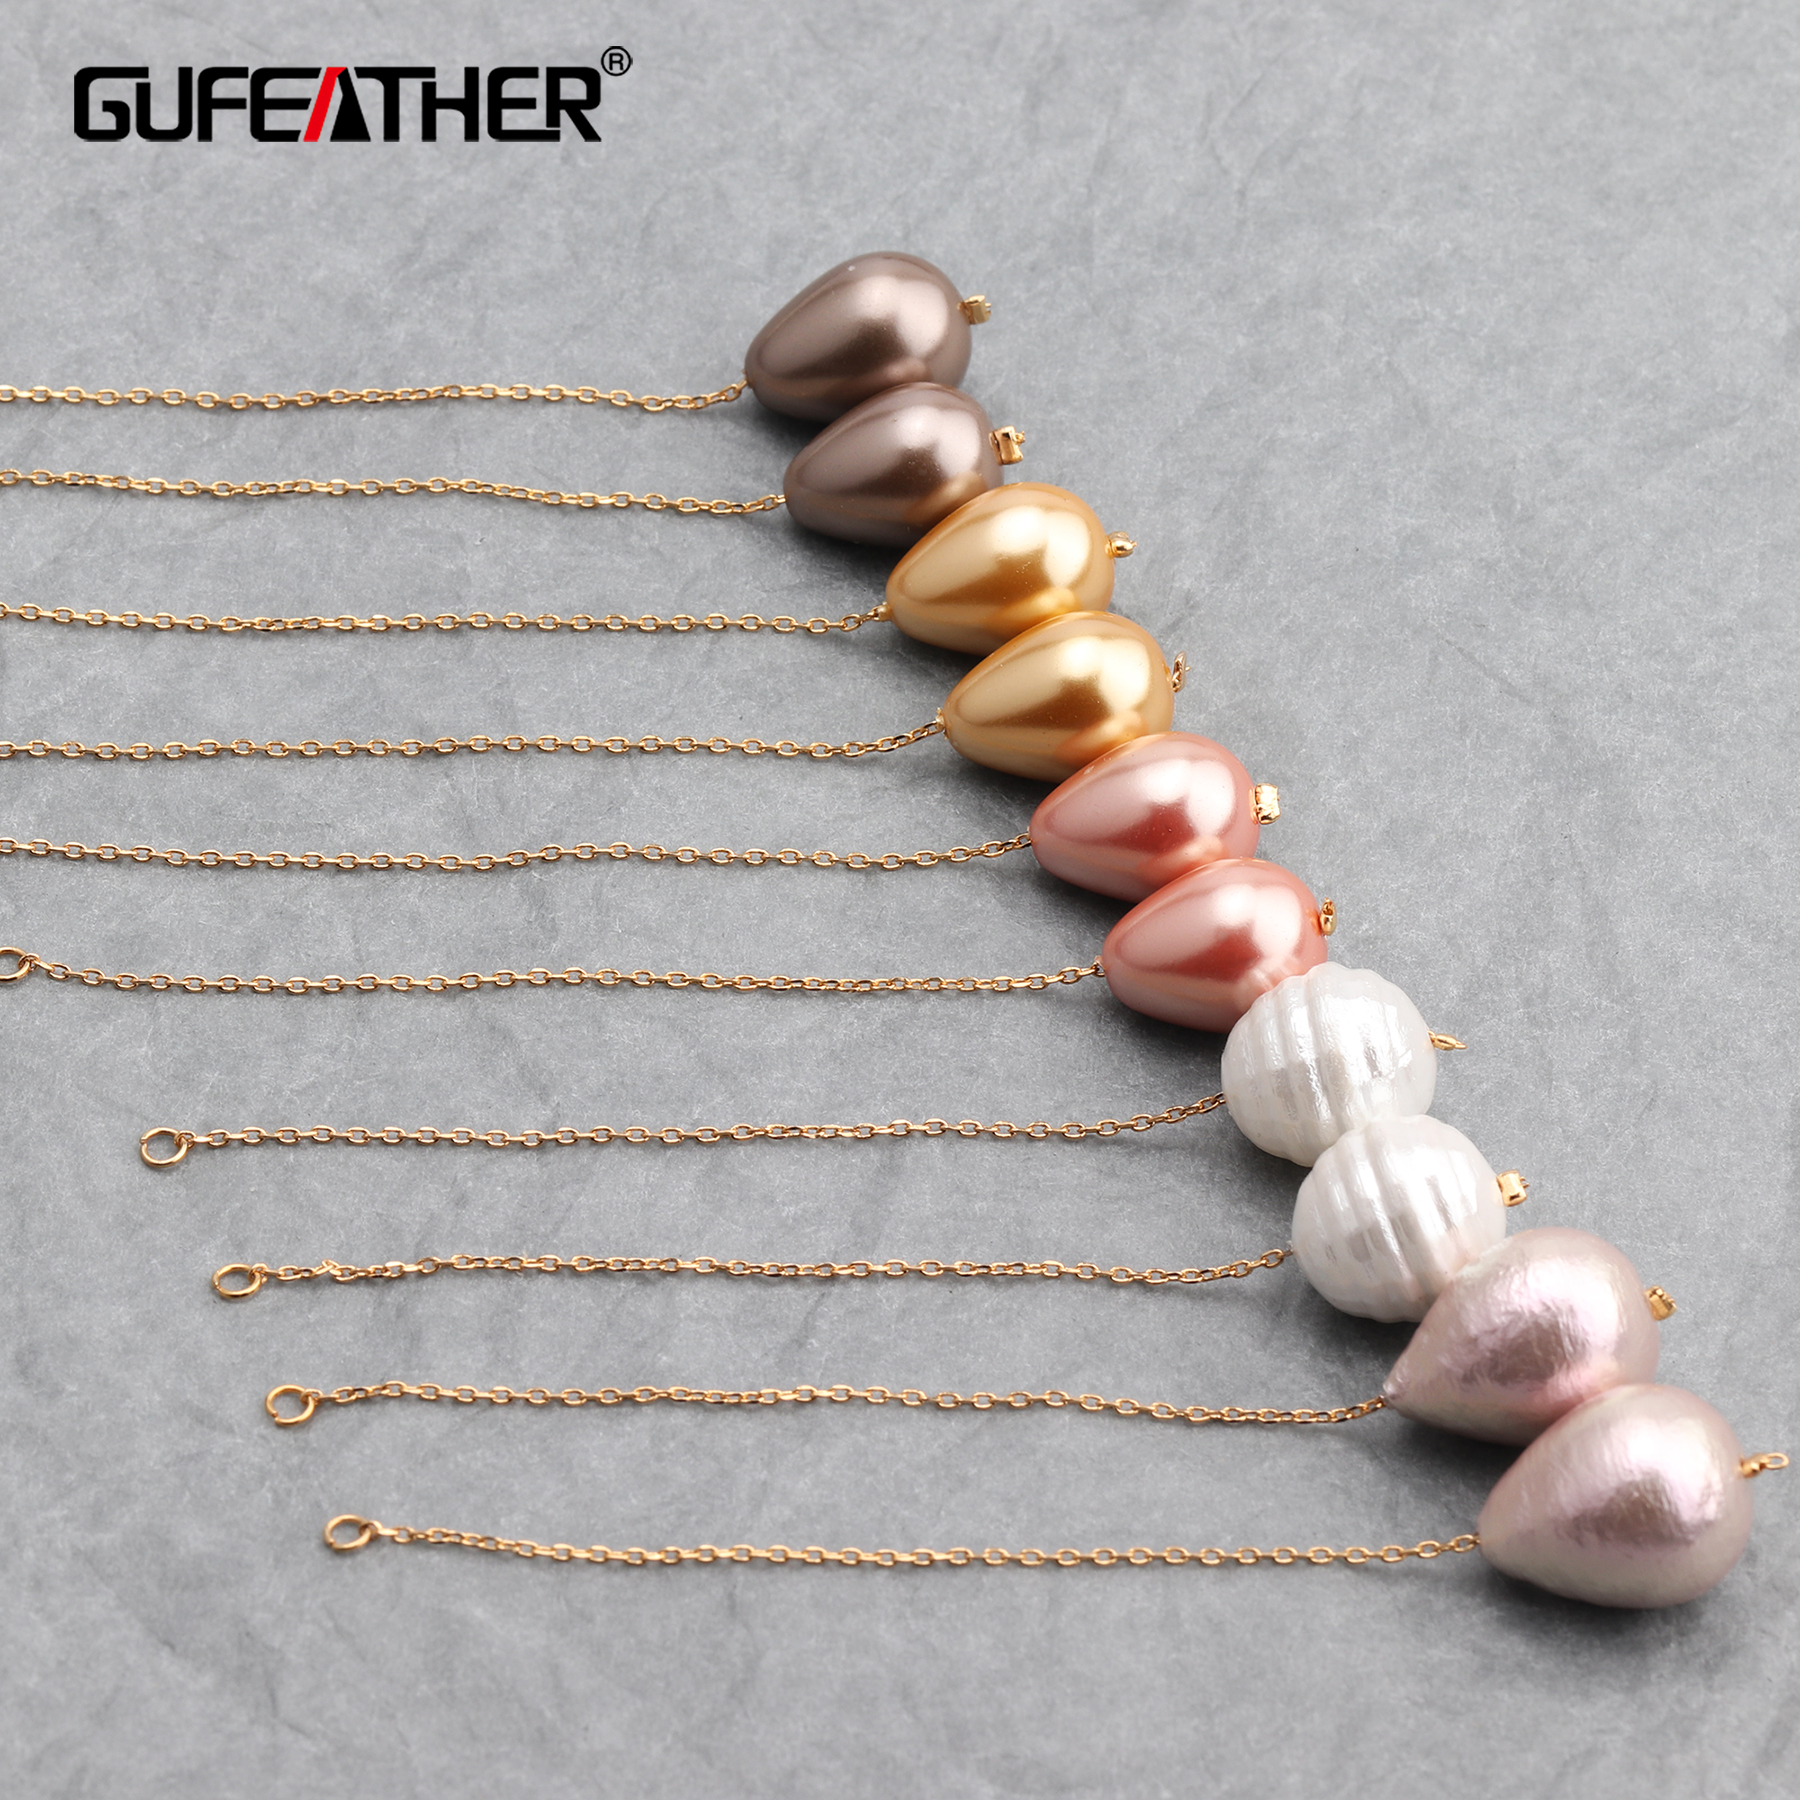 GUFEATHER M605,jewelry Accessories,diy Beads Pendant,18k Gold Plated,jump Ring,diy Earring Necklace,jewelry Making,10pcs/lot